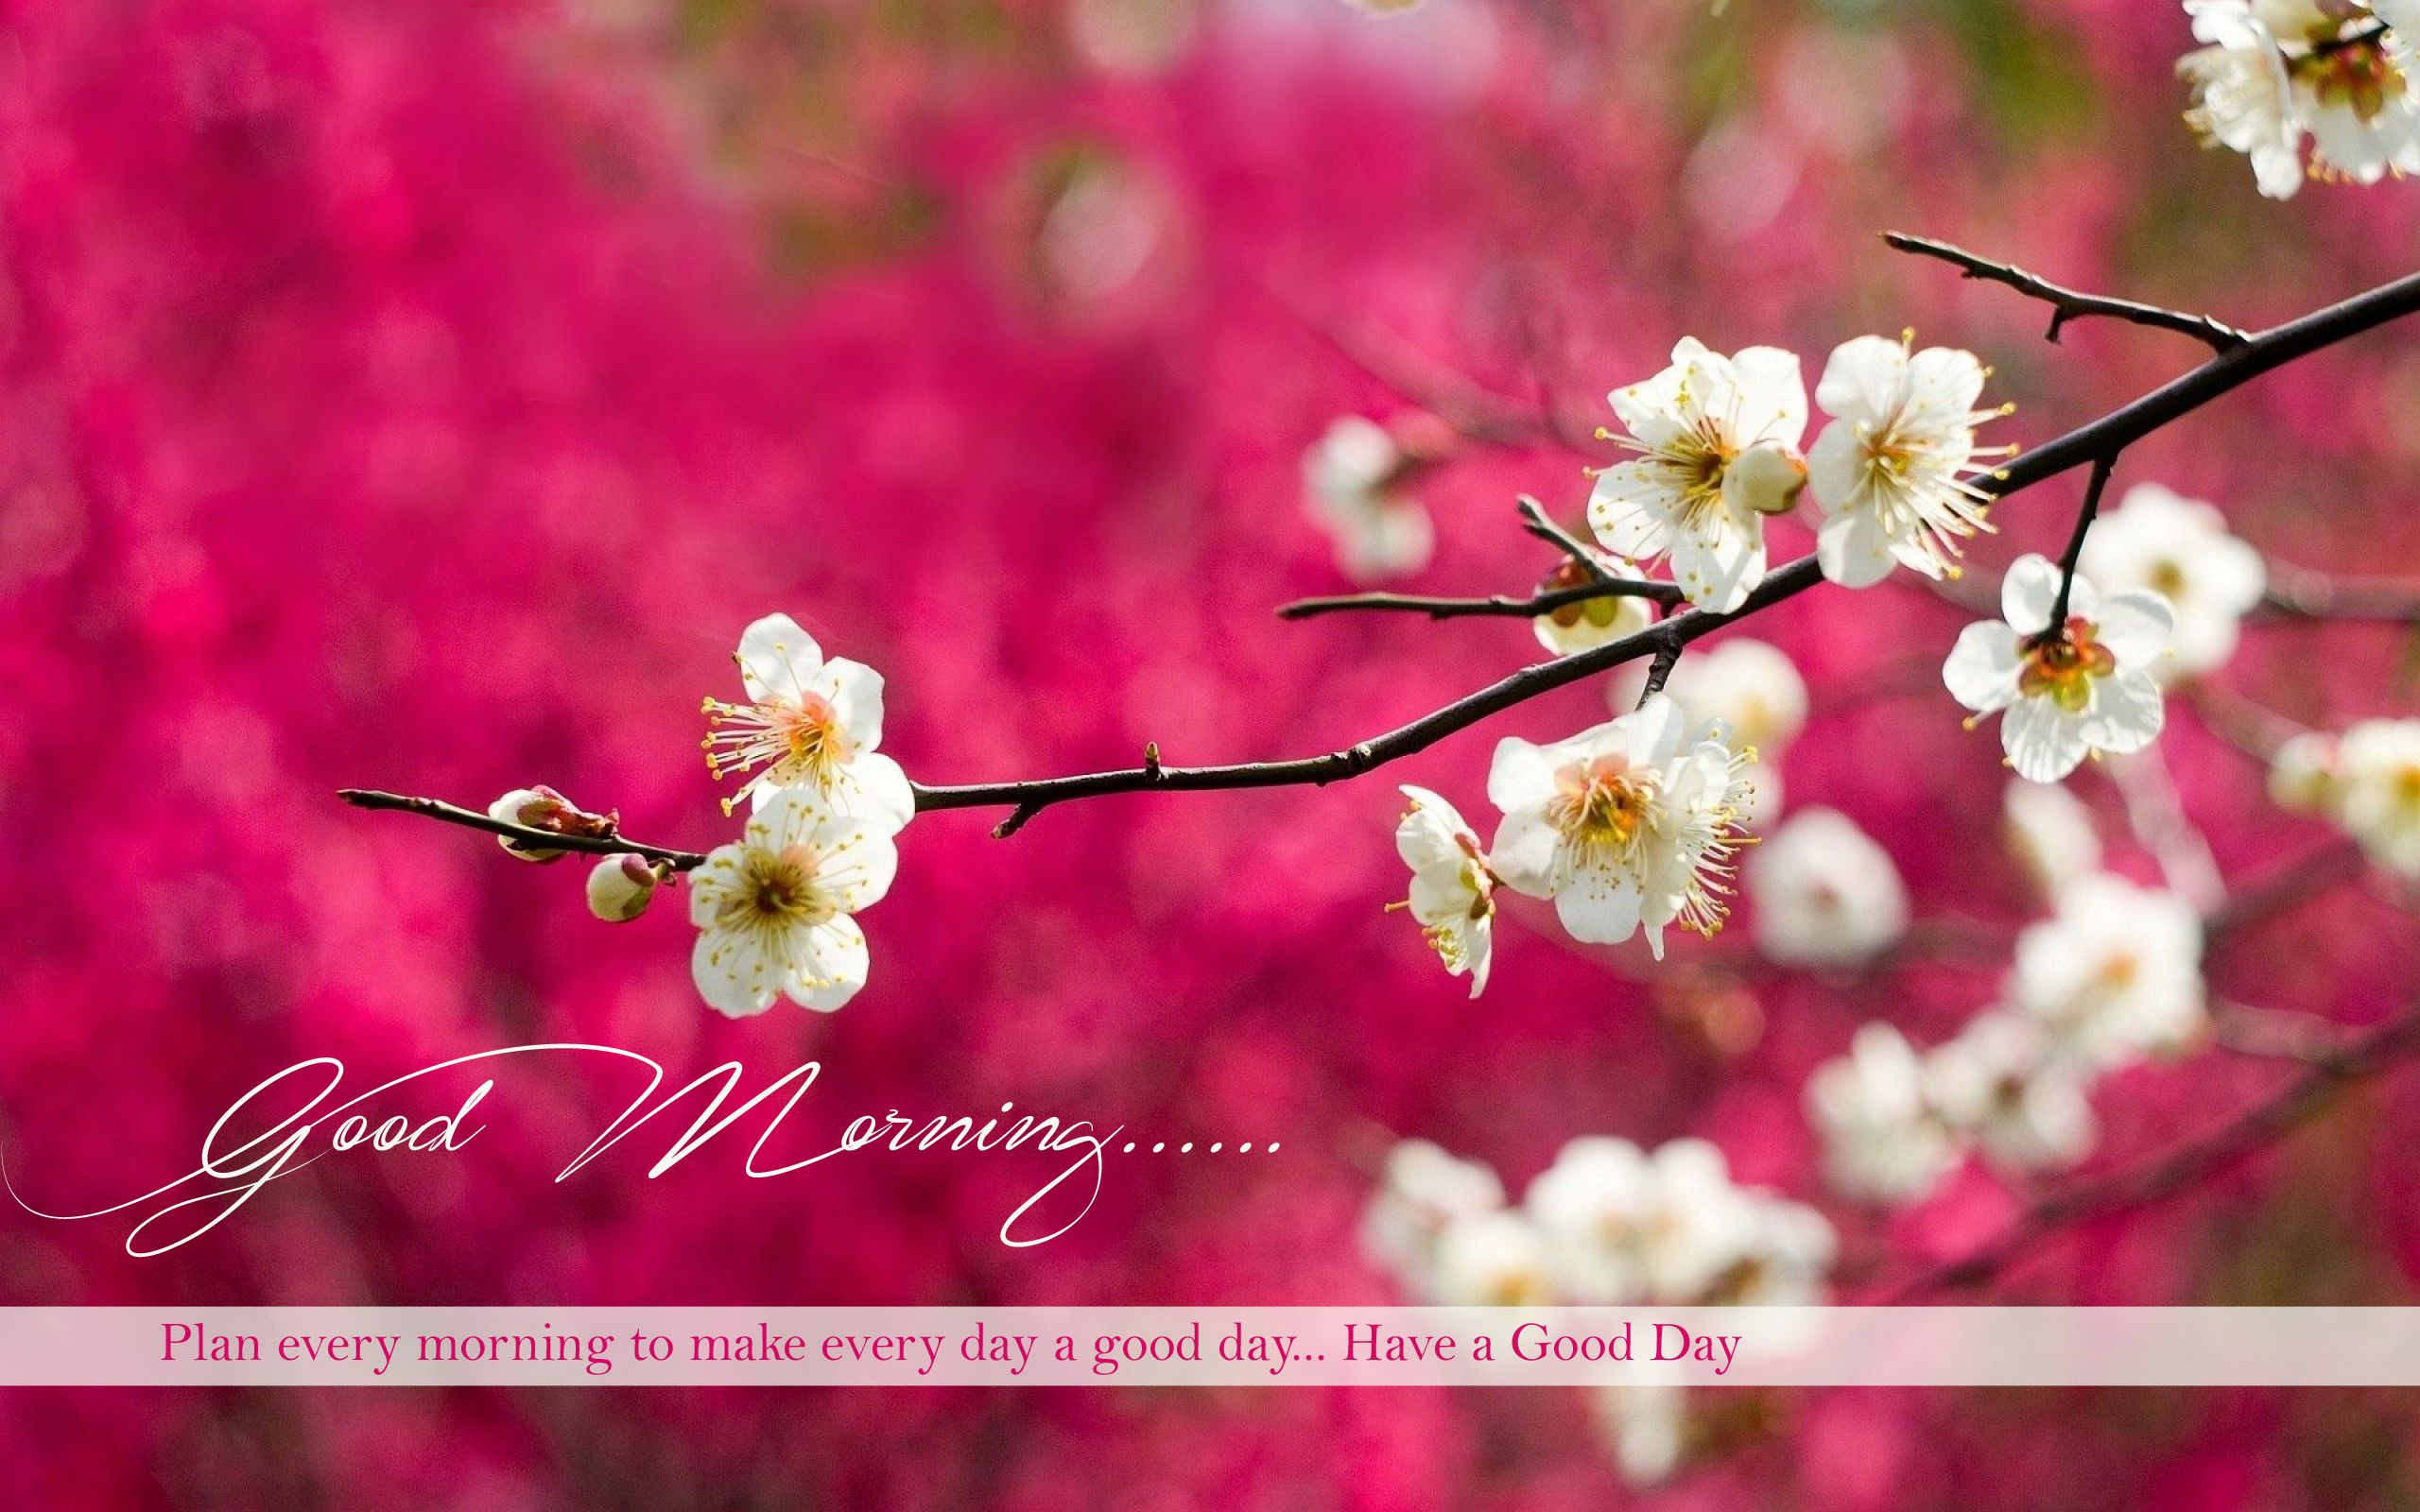 Good Morning wishes pictures for friends morning pics